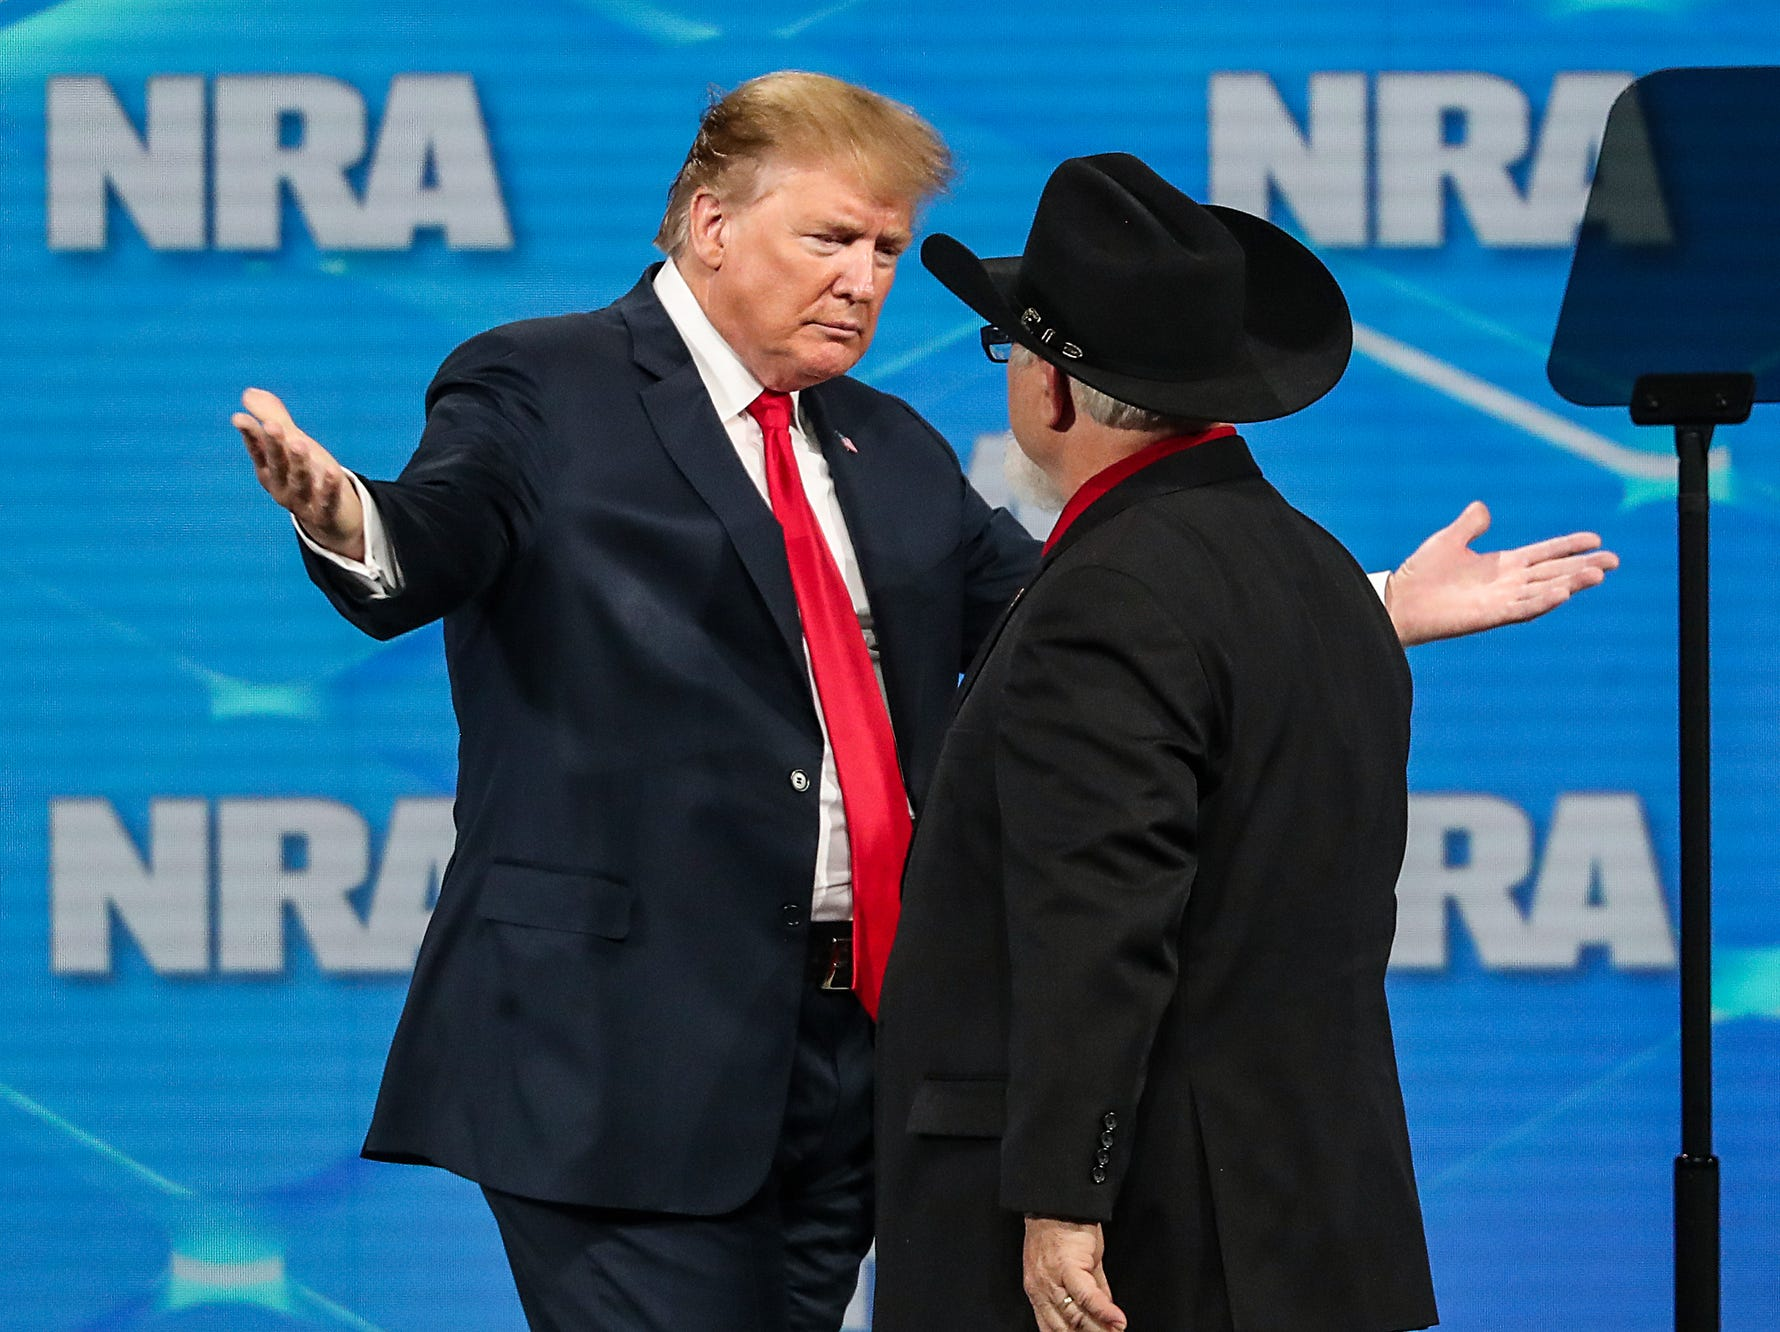 United States President Donald Trump hugs Stephen Willeford, who helped stop an active shooter at a baptist church in Sunderland Springs, Texas, during the National Rifle Association Institute for Legislative Action Leadership Forum, Friday, April 26, 2019, at Lucas Oil Stadium in Indianapolis.